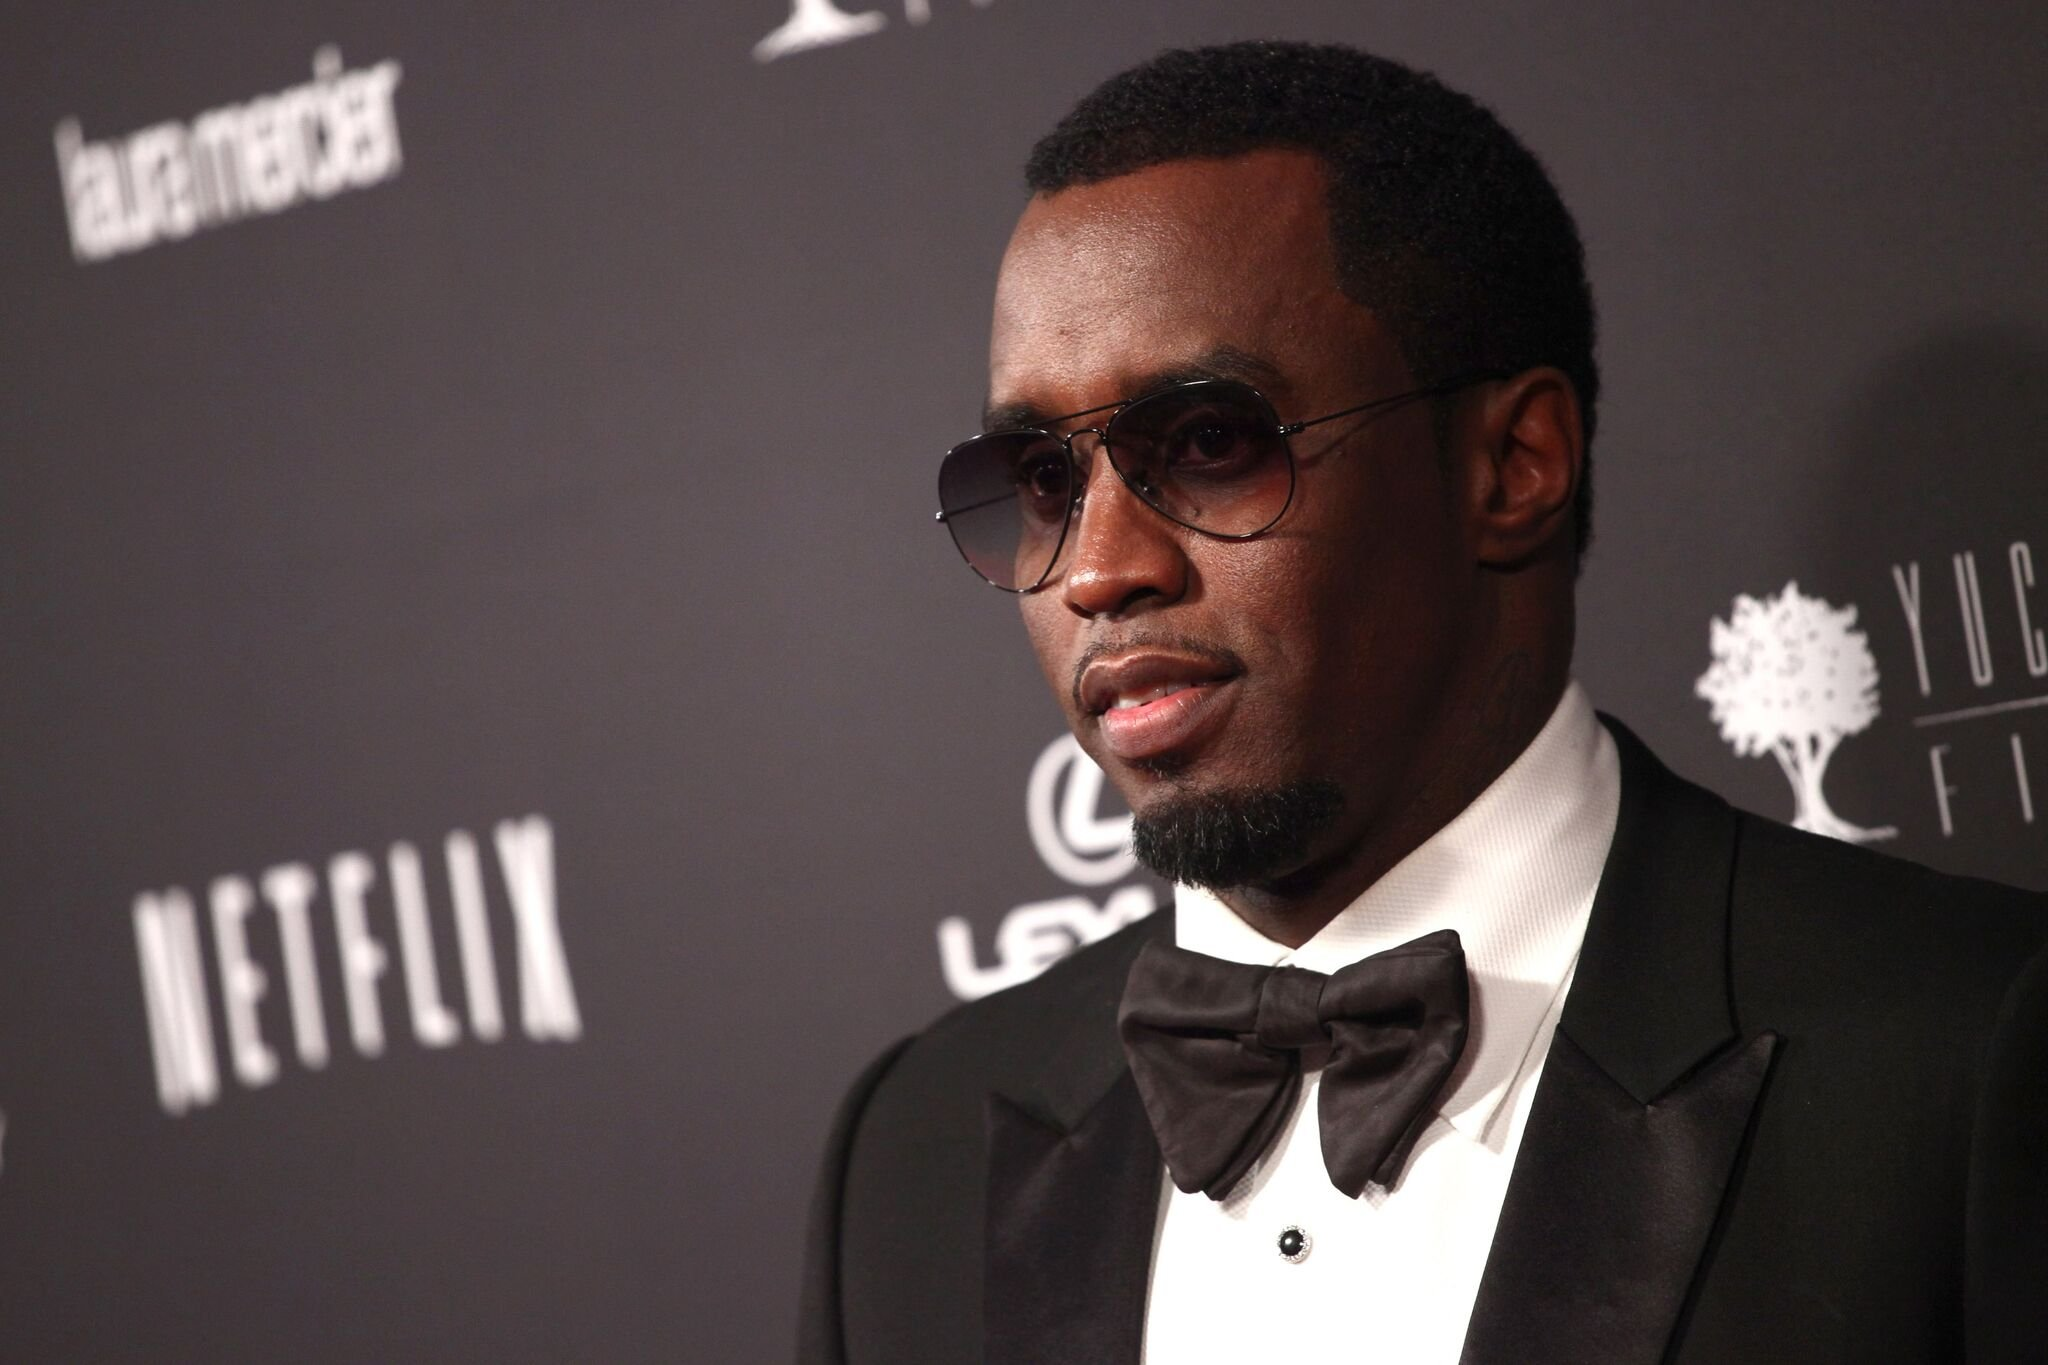 Diddy at the Weinstein Company's 2014 Golden Globe Awards after party. | Photo: Getty Images